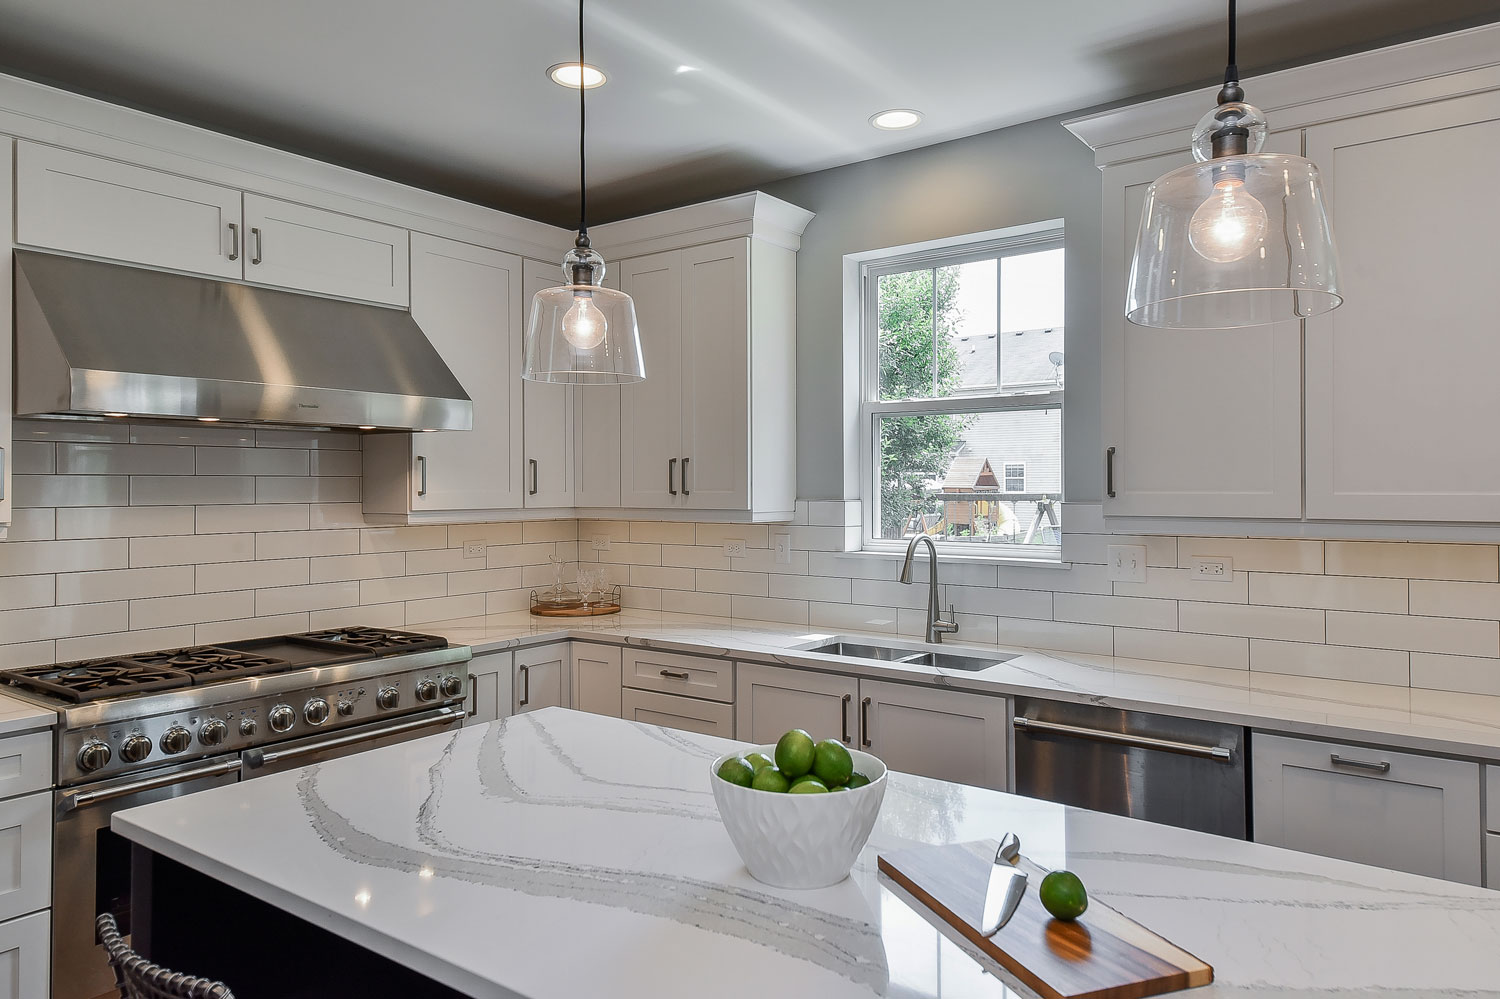 Plainfield Kitchen Remodel - White Cabinetry, White Subway Tile, Dark Island - Sebring Design Build